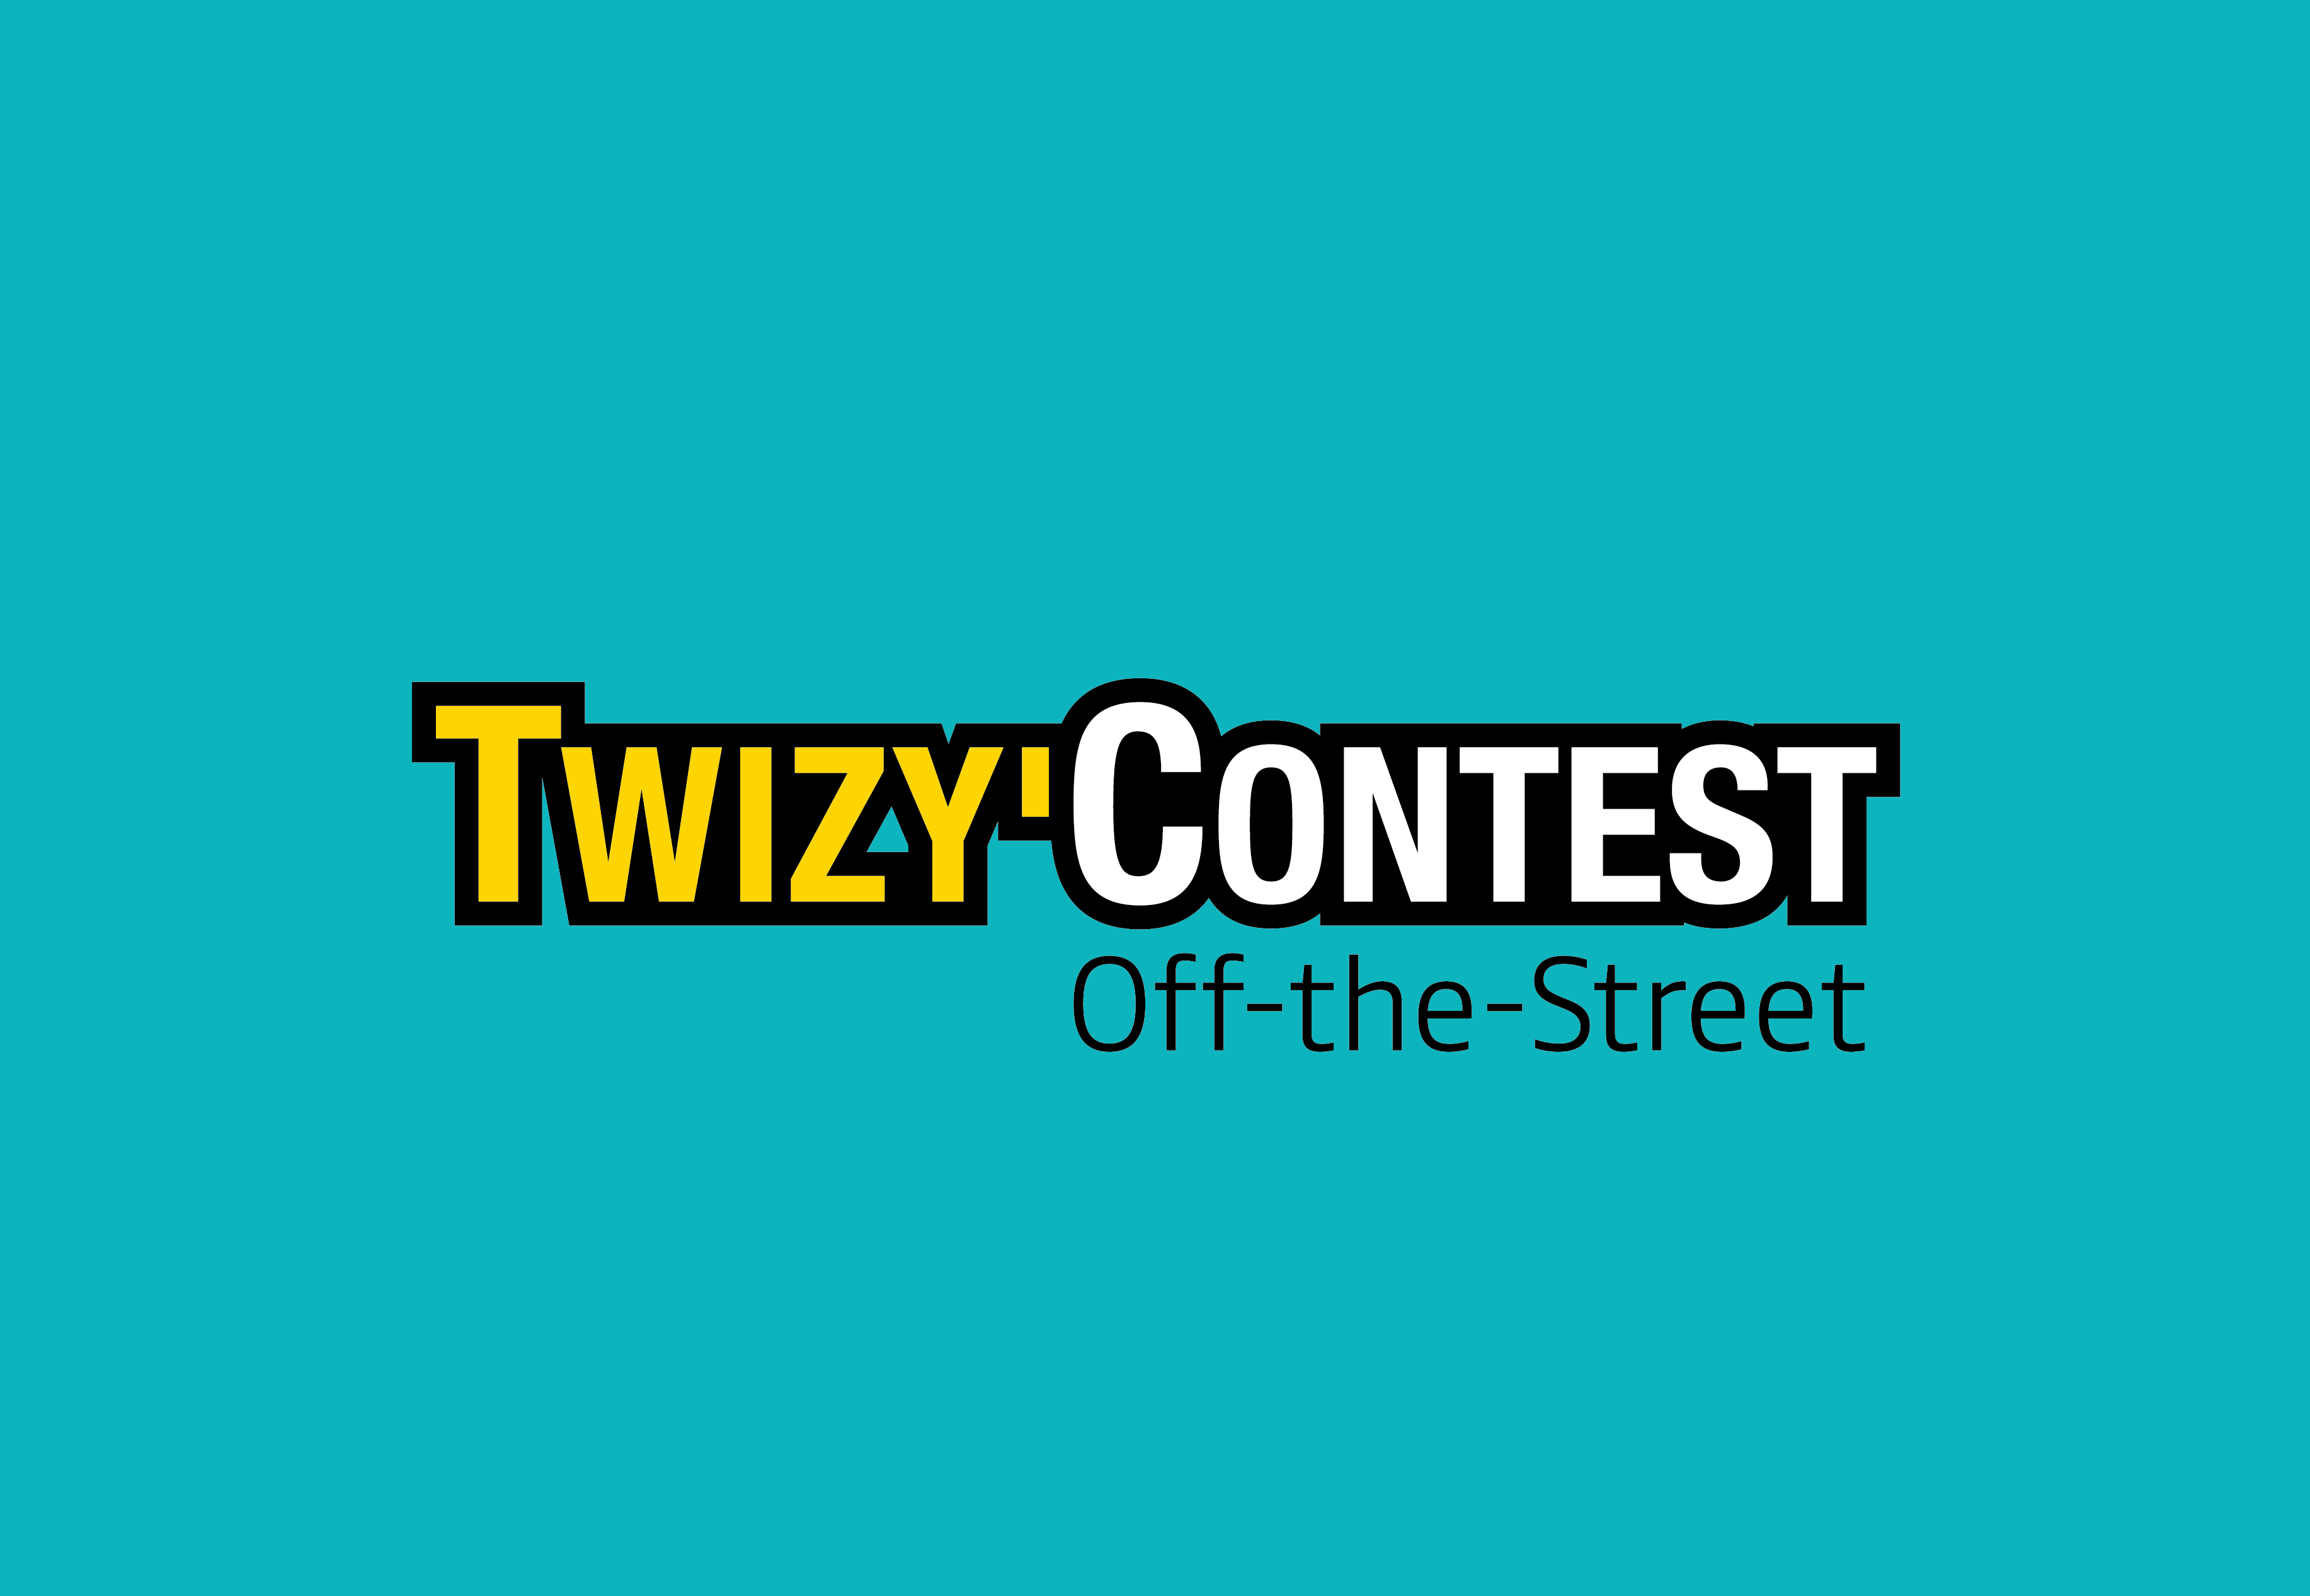 Signature Twizy Contest.png